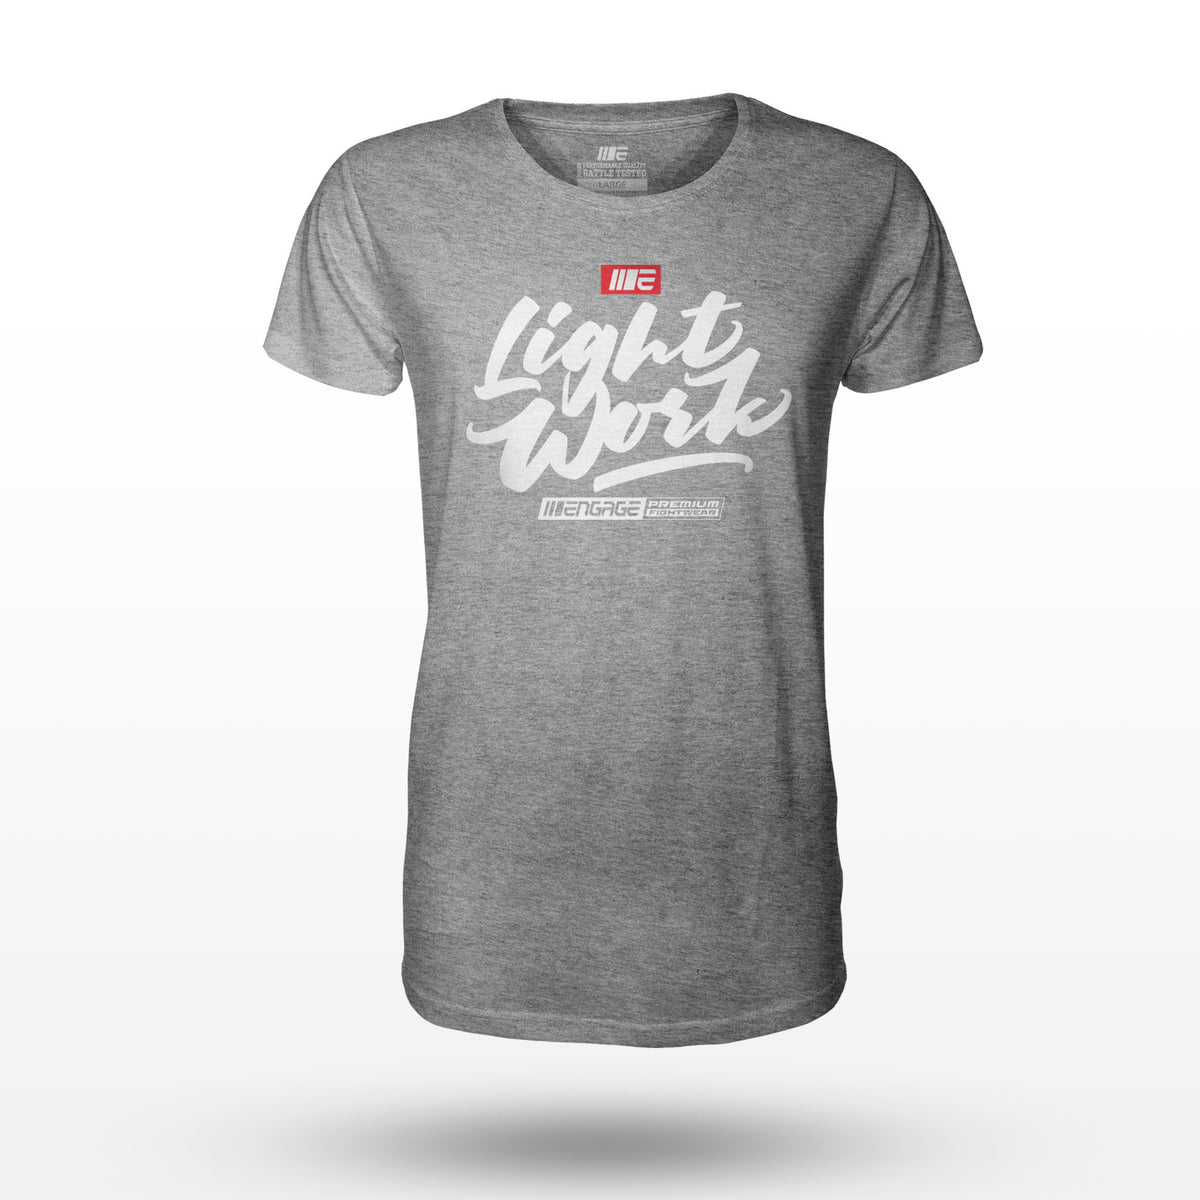 Engage Light Work T-Shirt Tees Engage MMA Online Fight Store for Apparel, Fightwear and Fight Gear Equipment